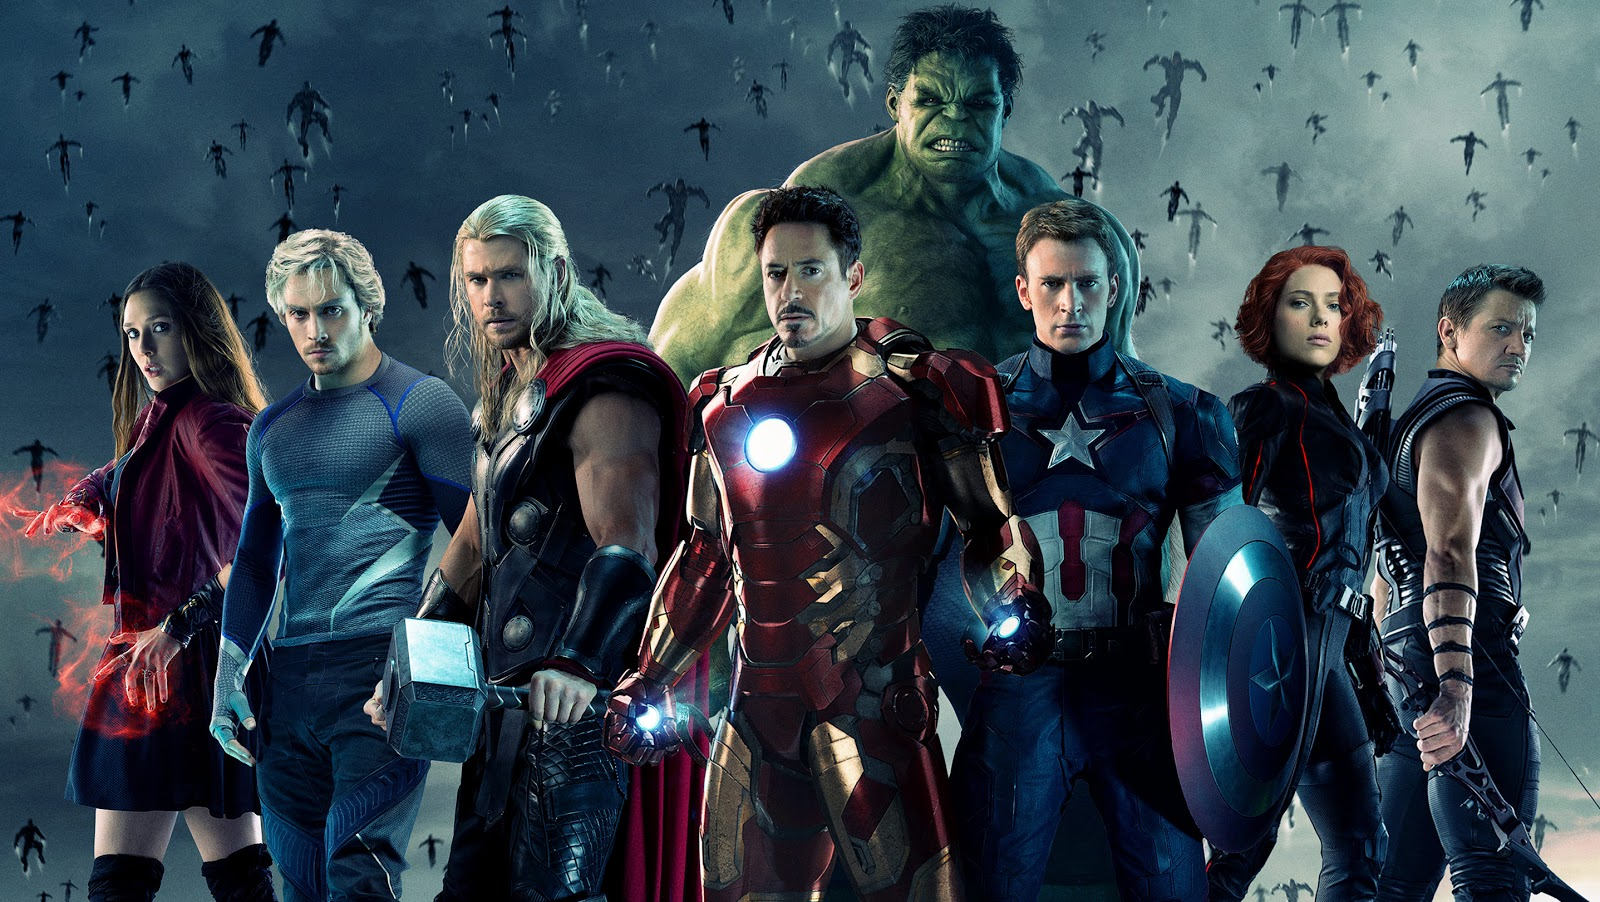 Avengers (Photo: Release)